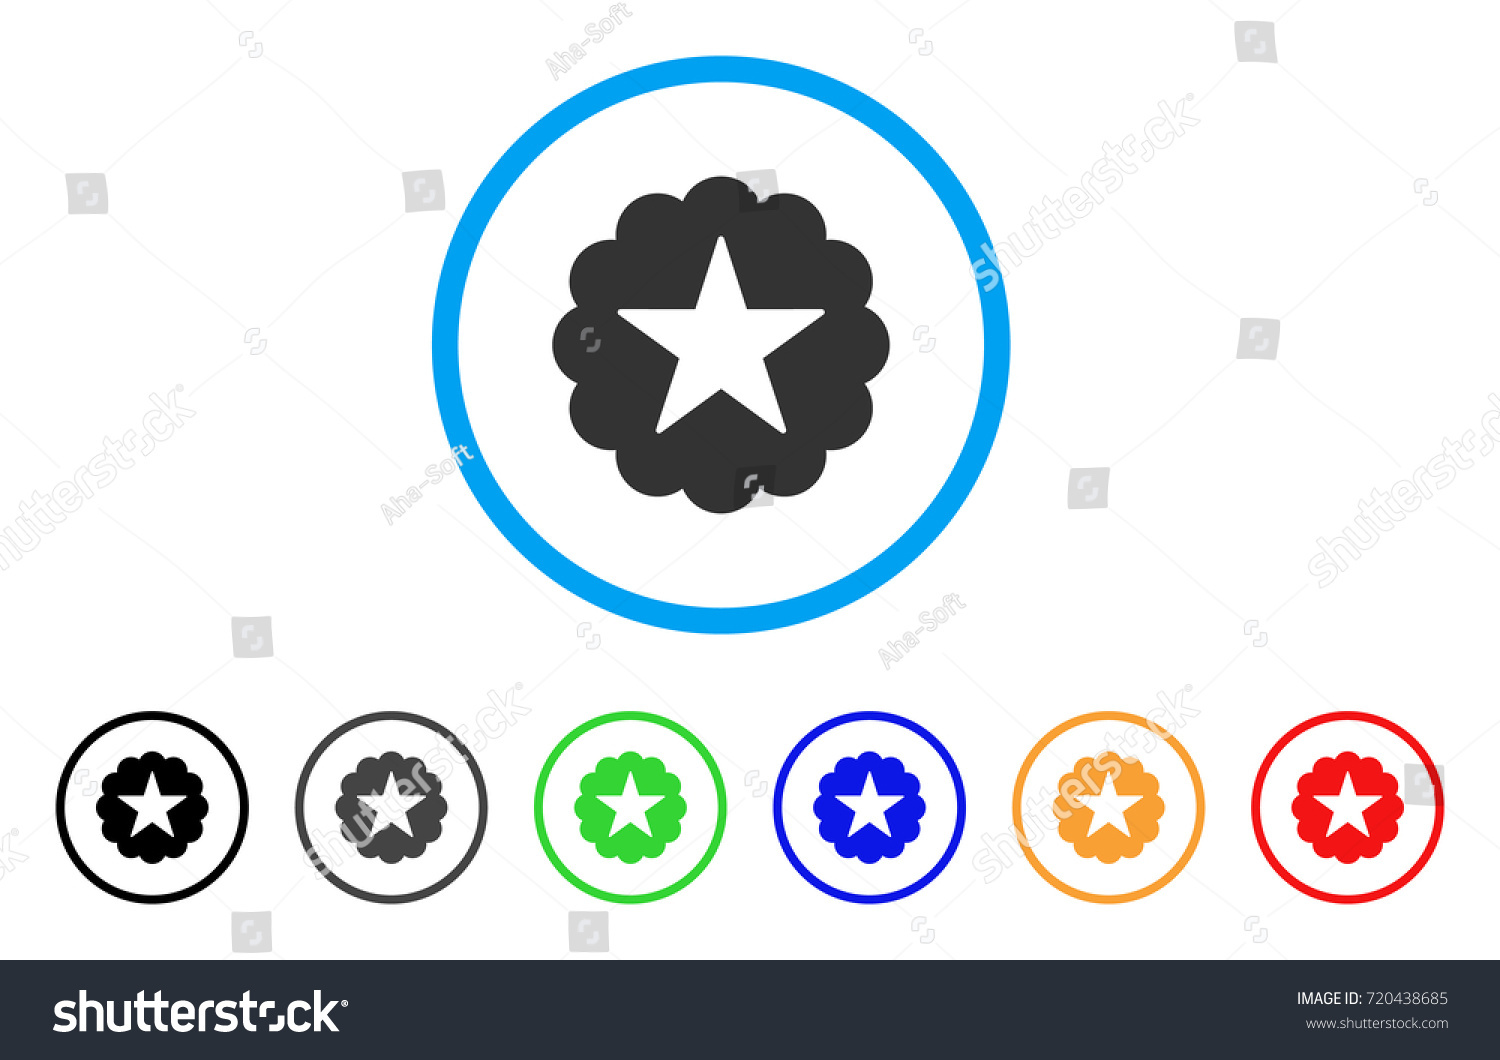 Star Quality Sticker Rounded Icon Style Stock Vector 720438685